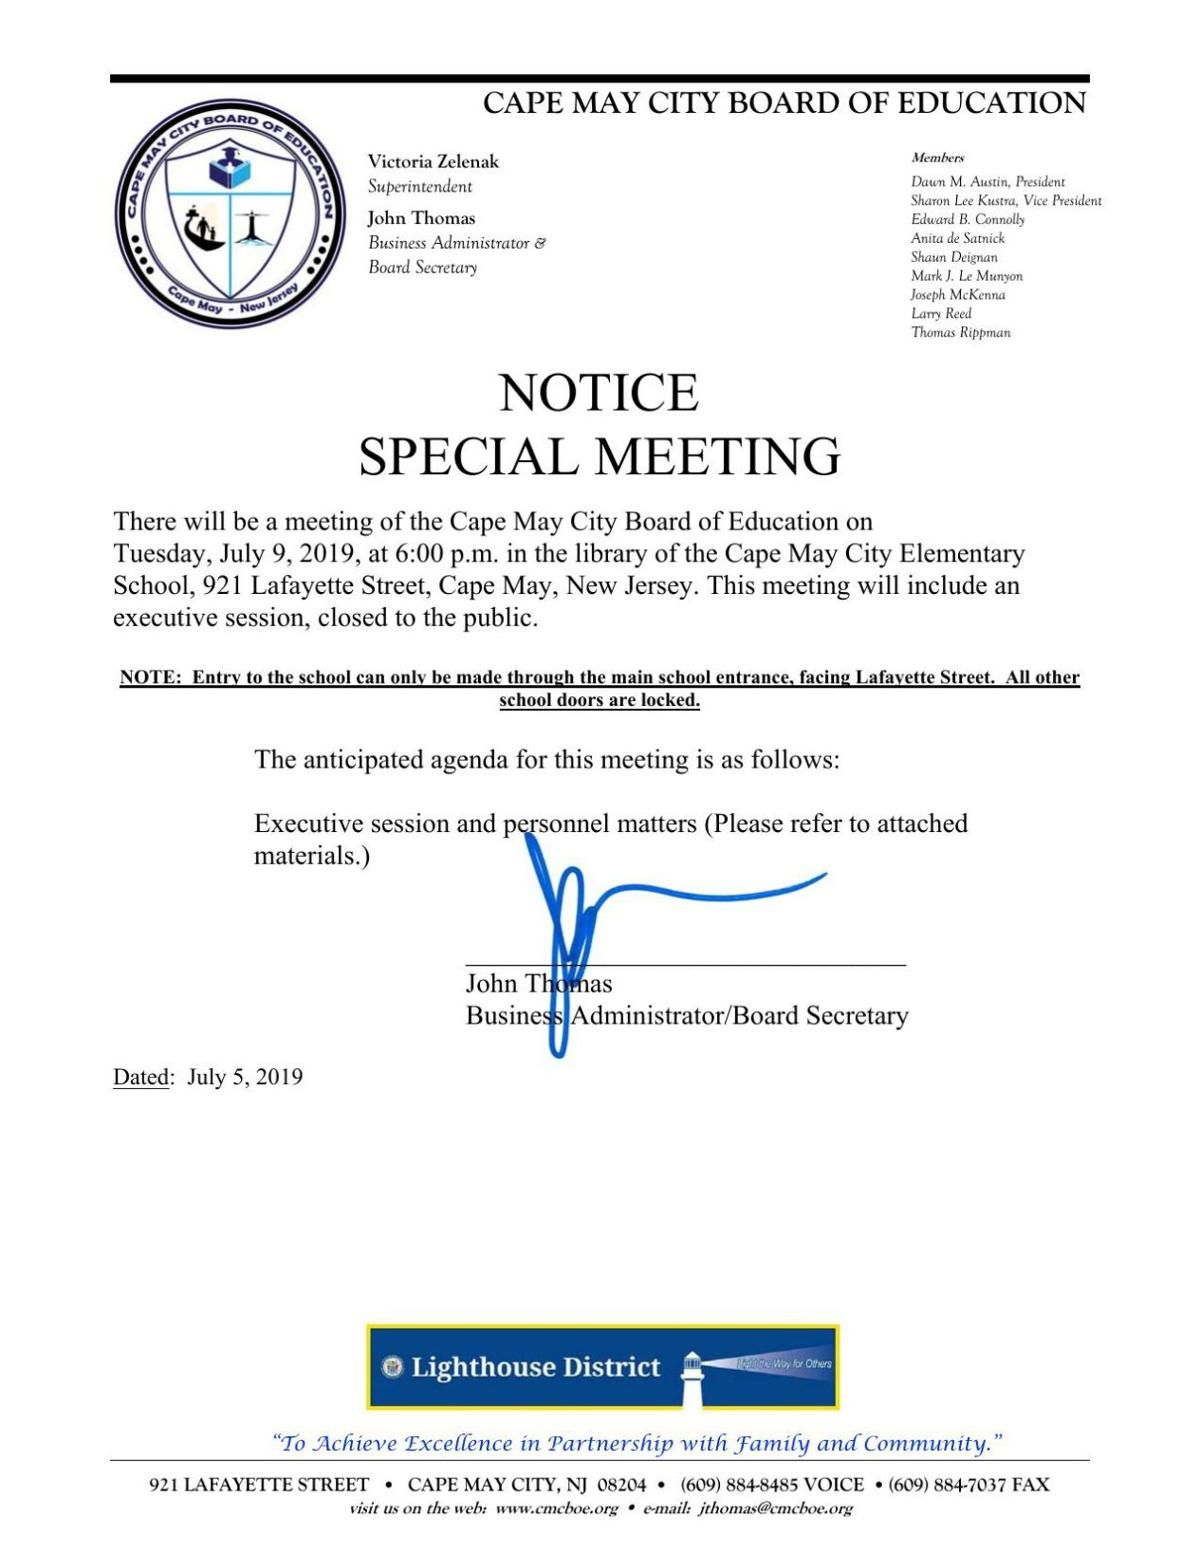 Cape May City Board of Education Special Meeting Agenda July 9, 2019